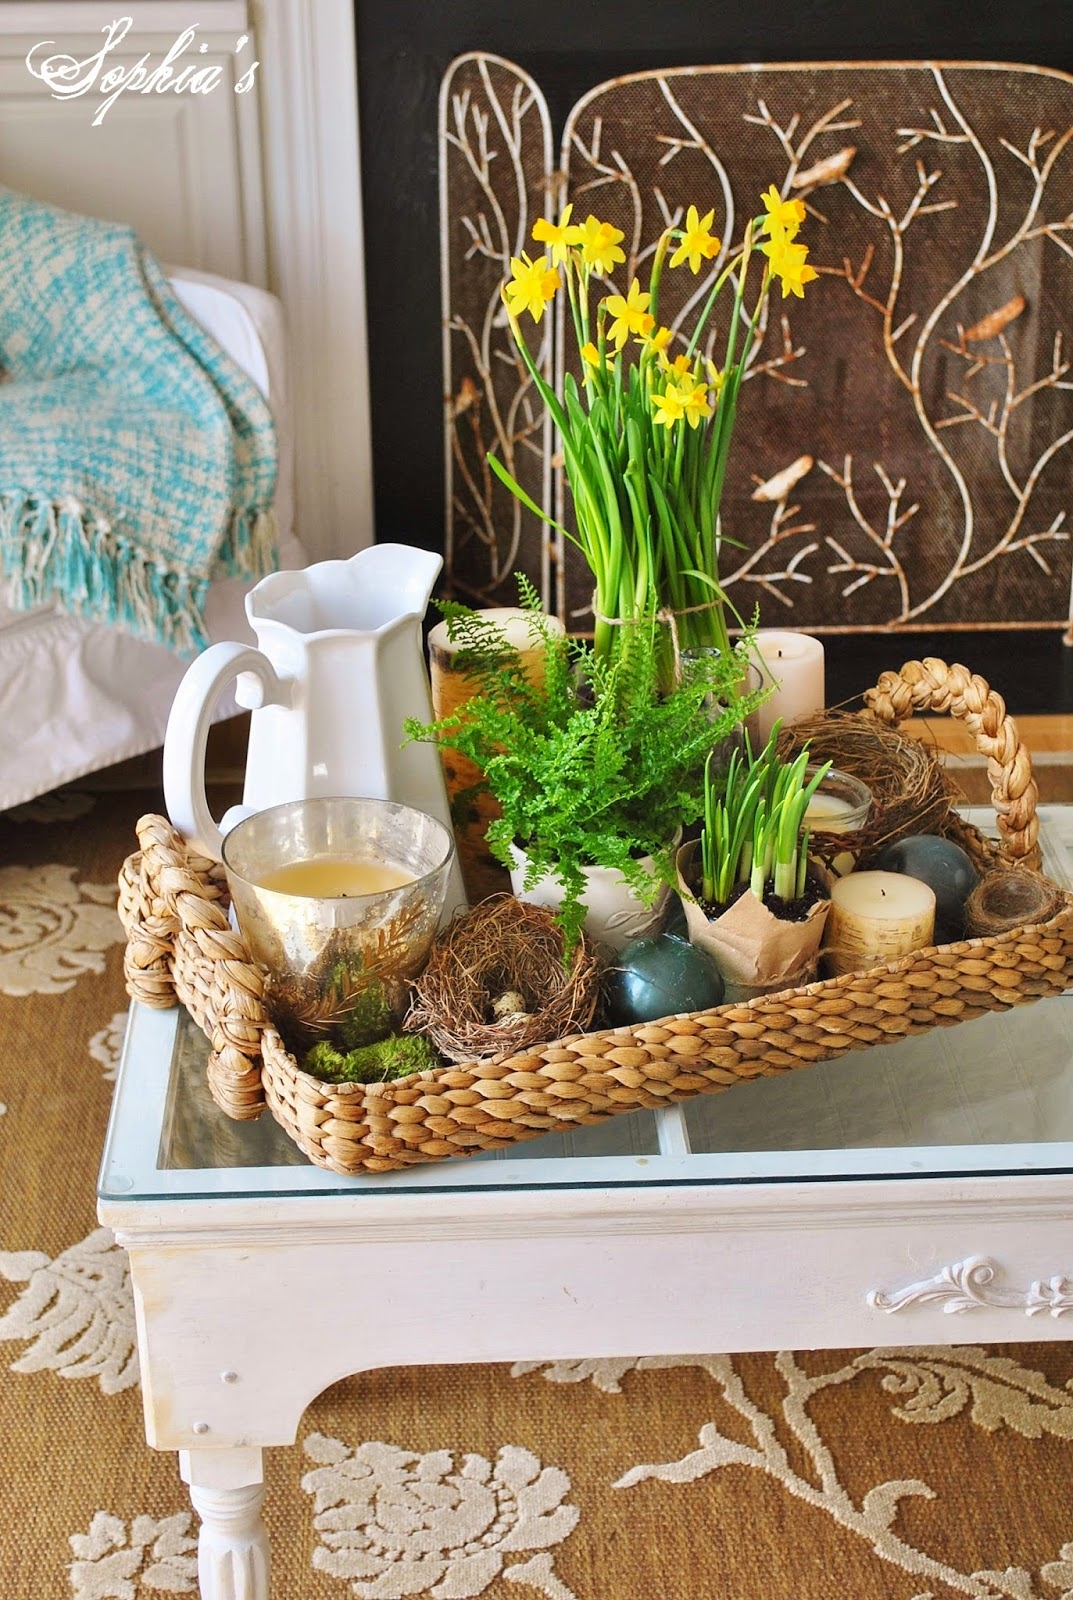 Room Decor: Sophia's: Adding Touches Of Spring To The Living Room